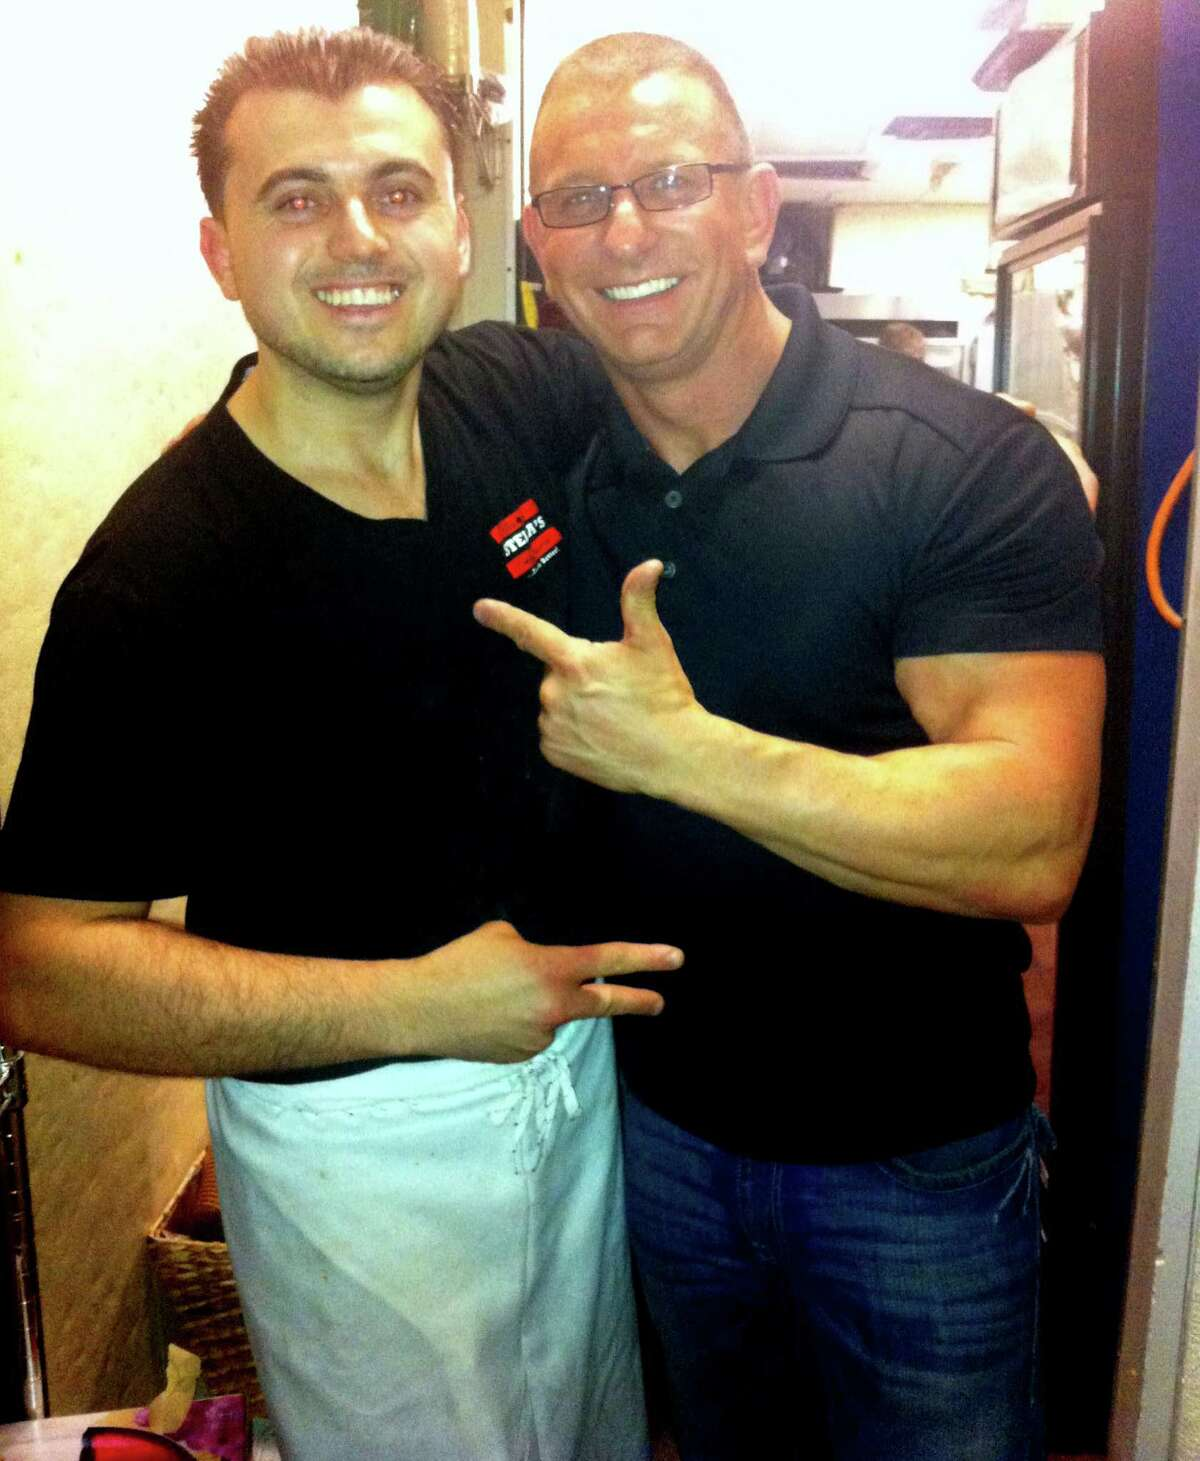 Alban Veliu, a pizza cook at Stella's Restaurant, poses with Chef Robert Irvine during filming for Food Network's